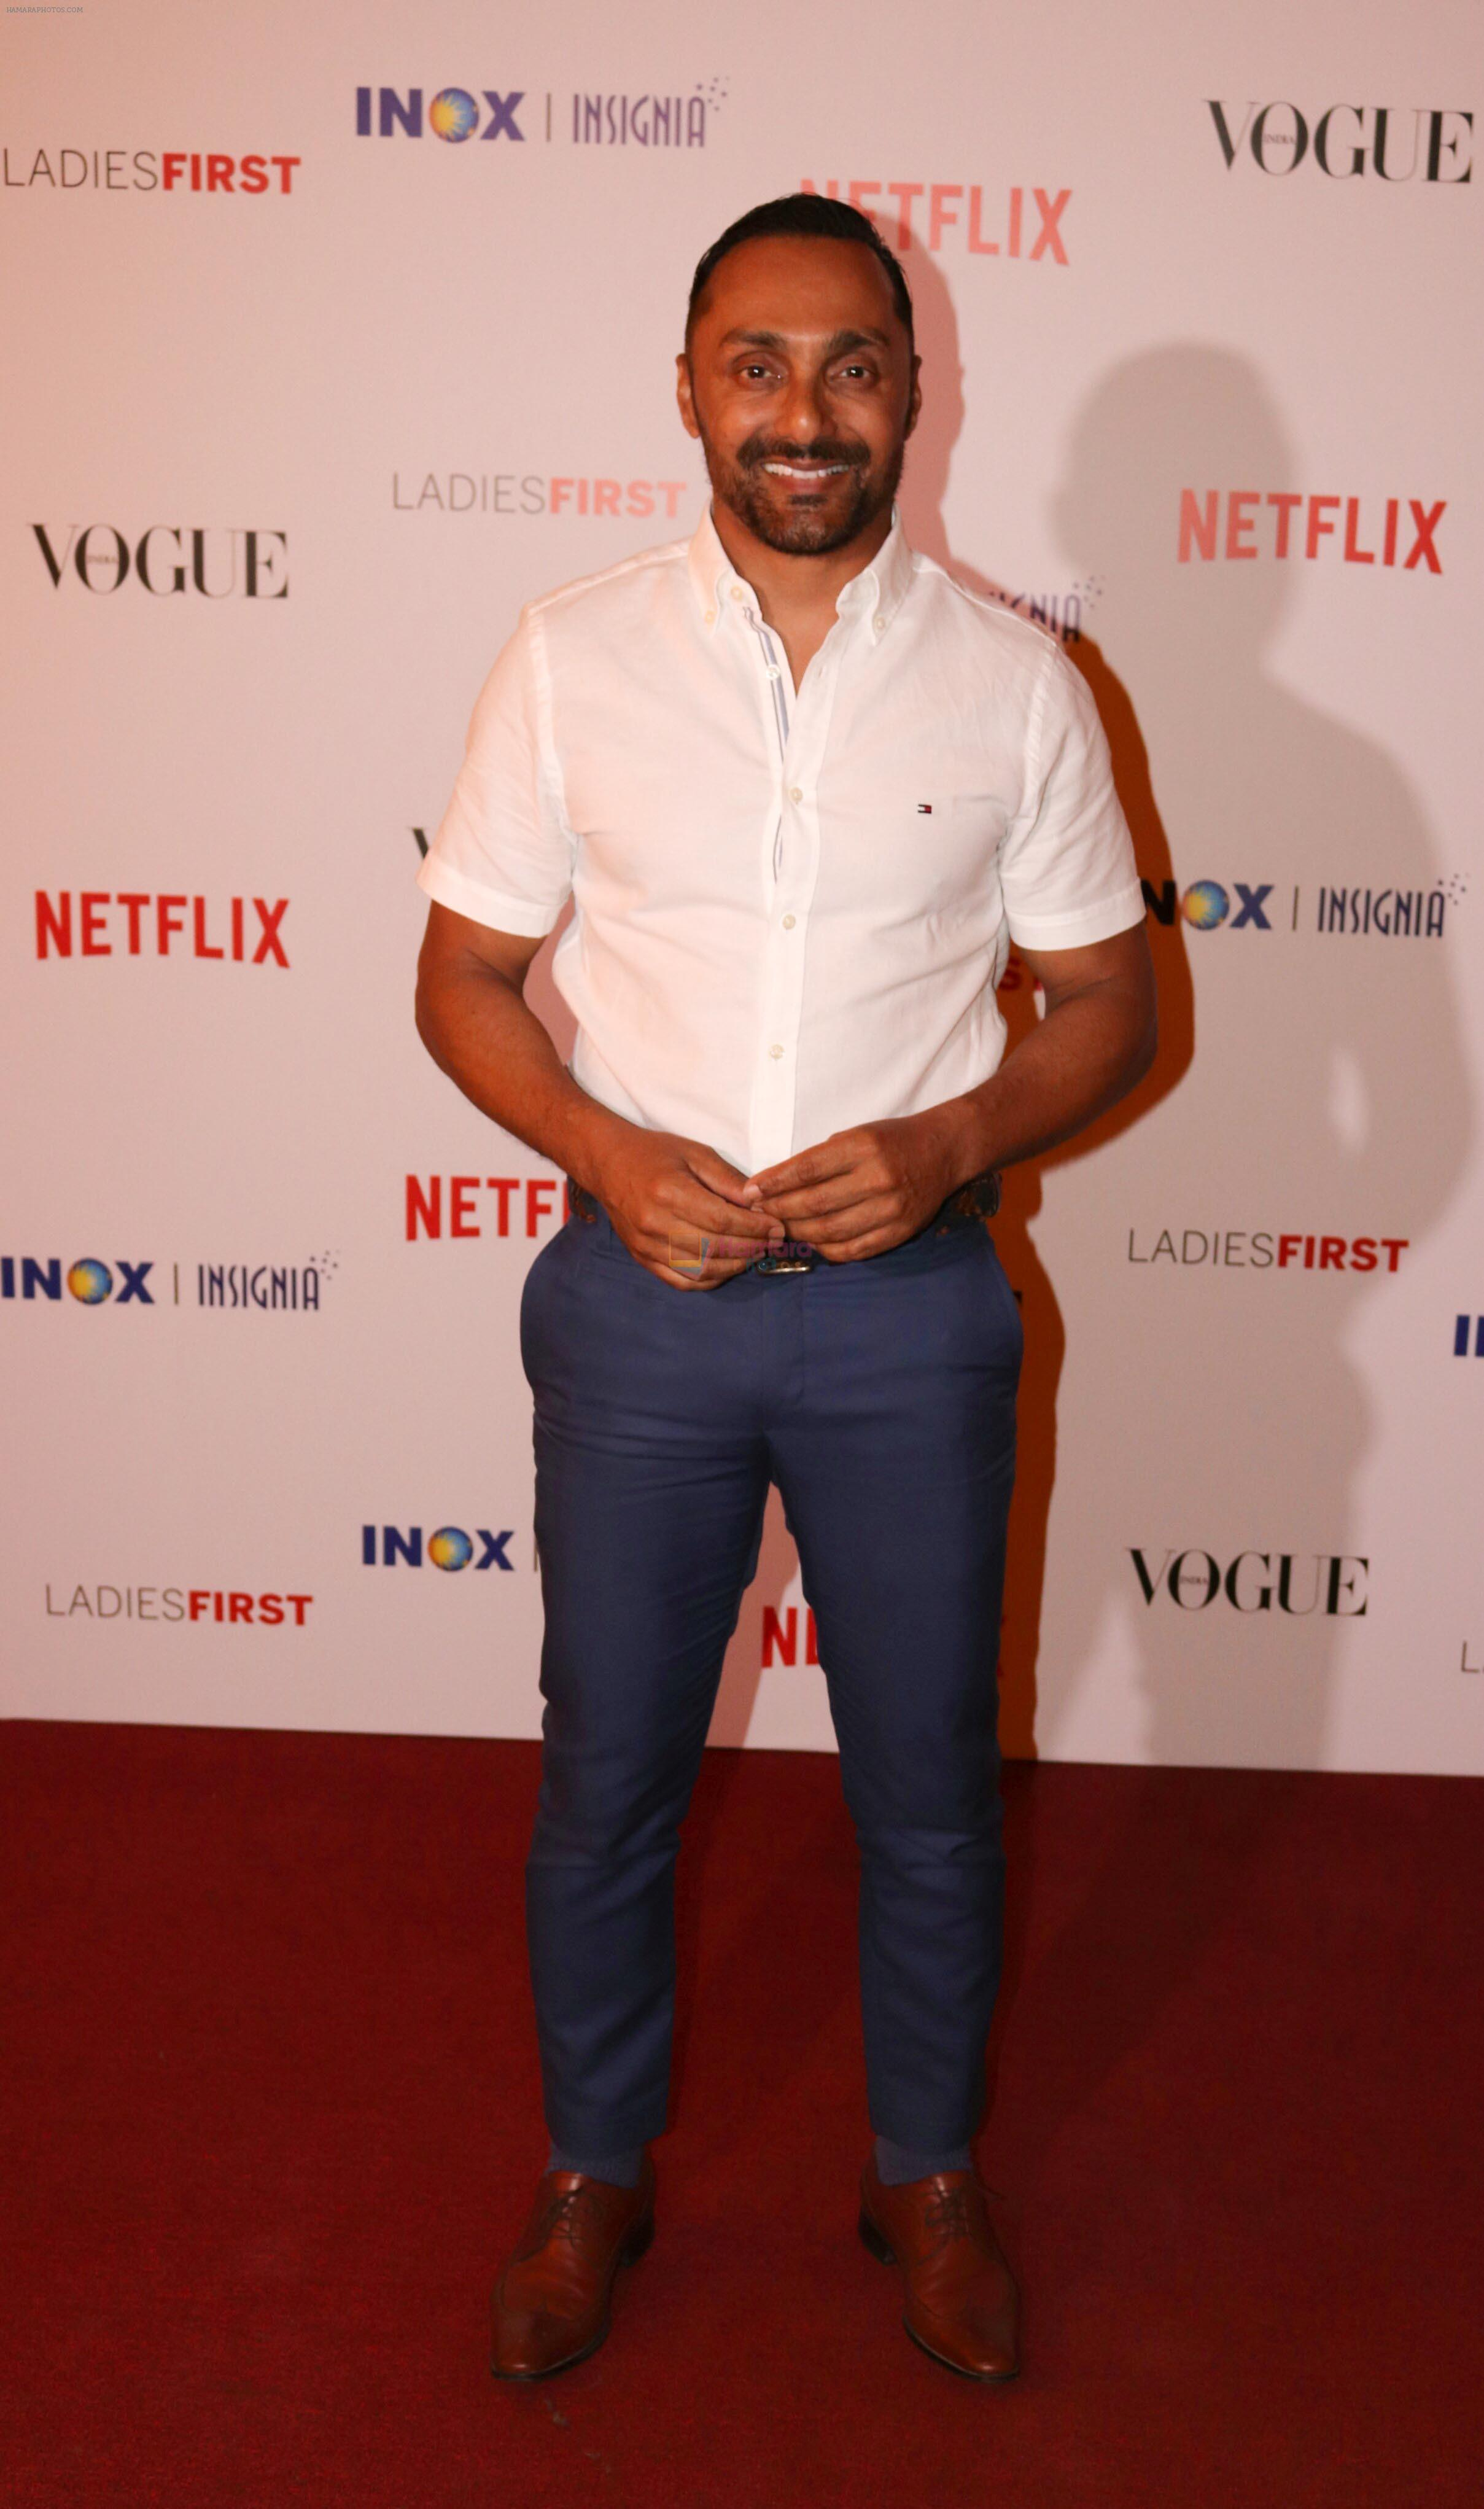 Rahul Bose at the Premier of _Ladies First_- The First Original Netflix Documentary that chronicles the life of World No 1 Archer, Deepika Kumari on 8th March 2018